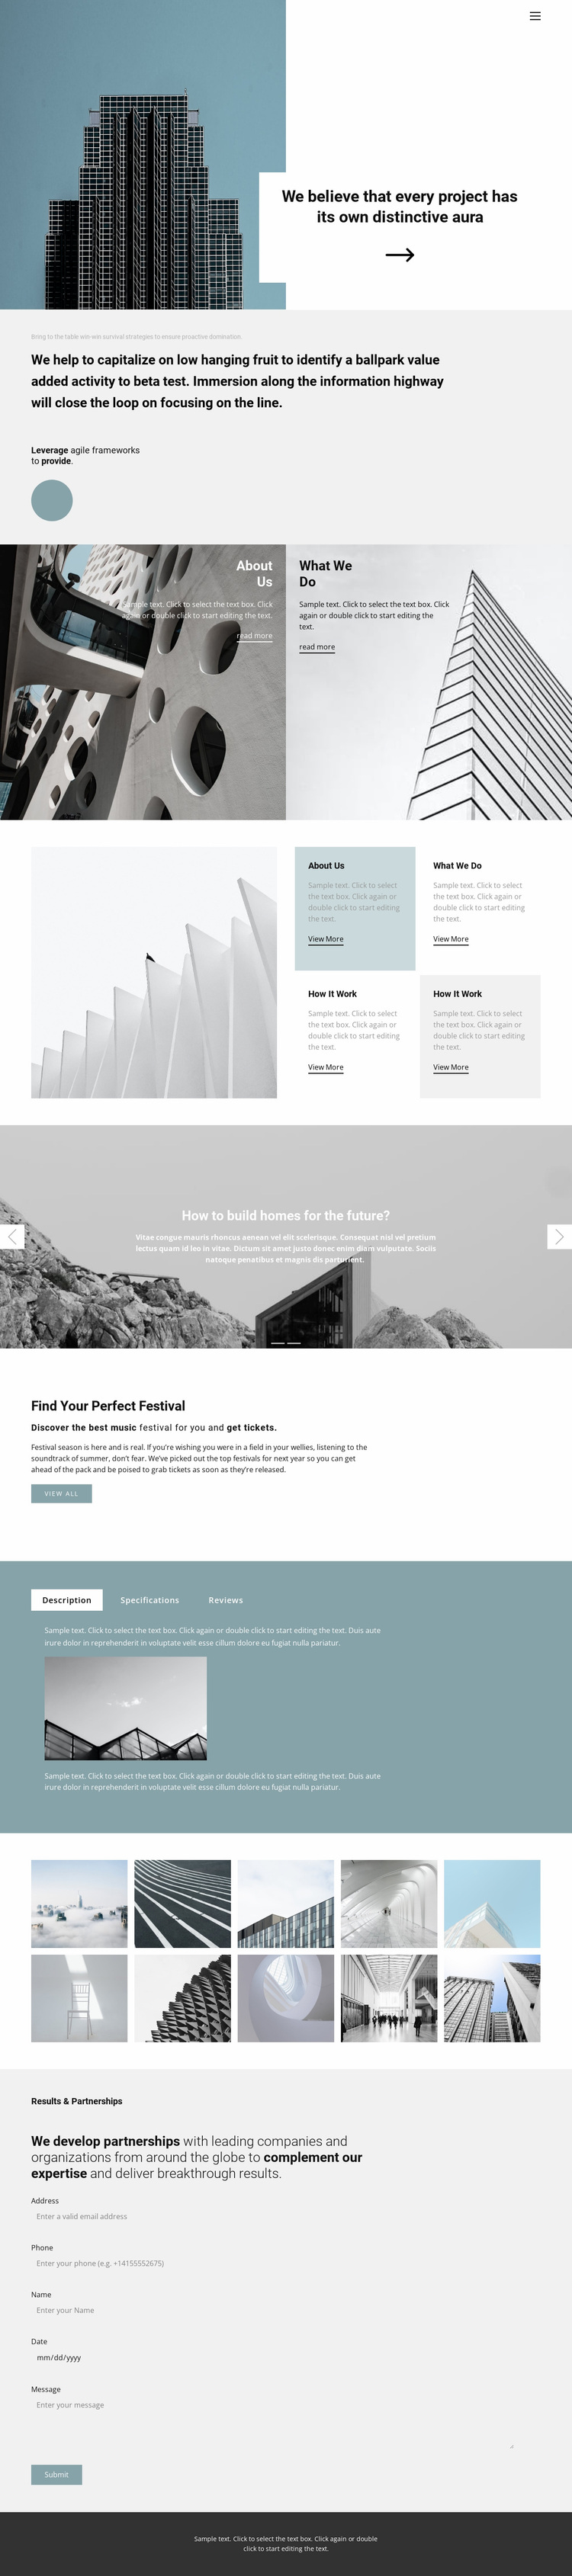 Choose an office for yourself Website Design